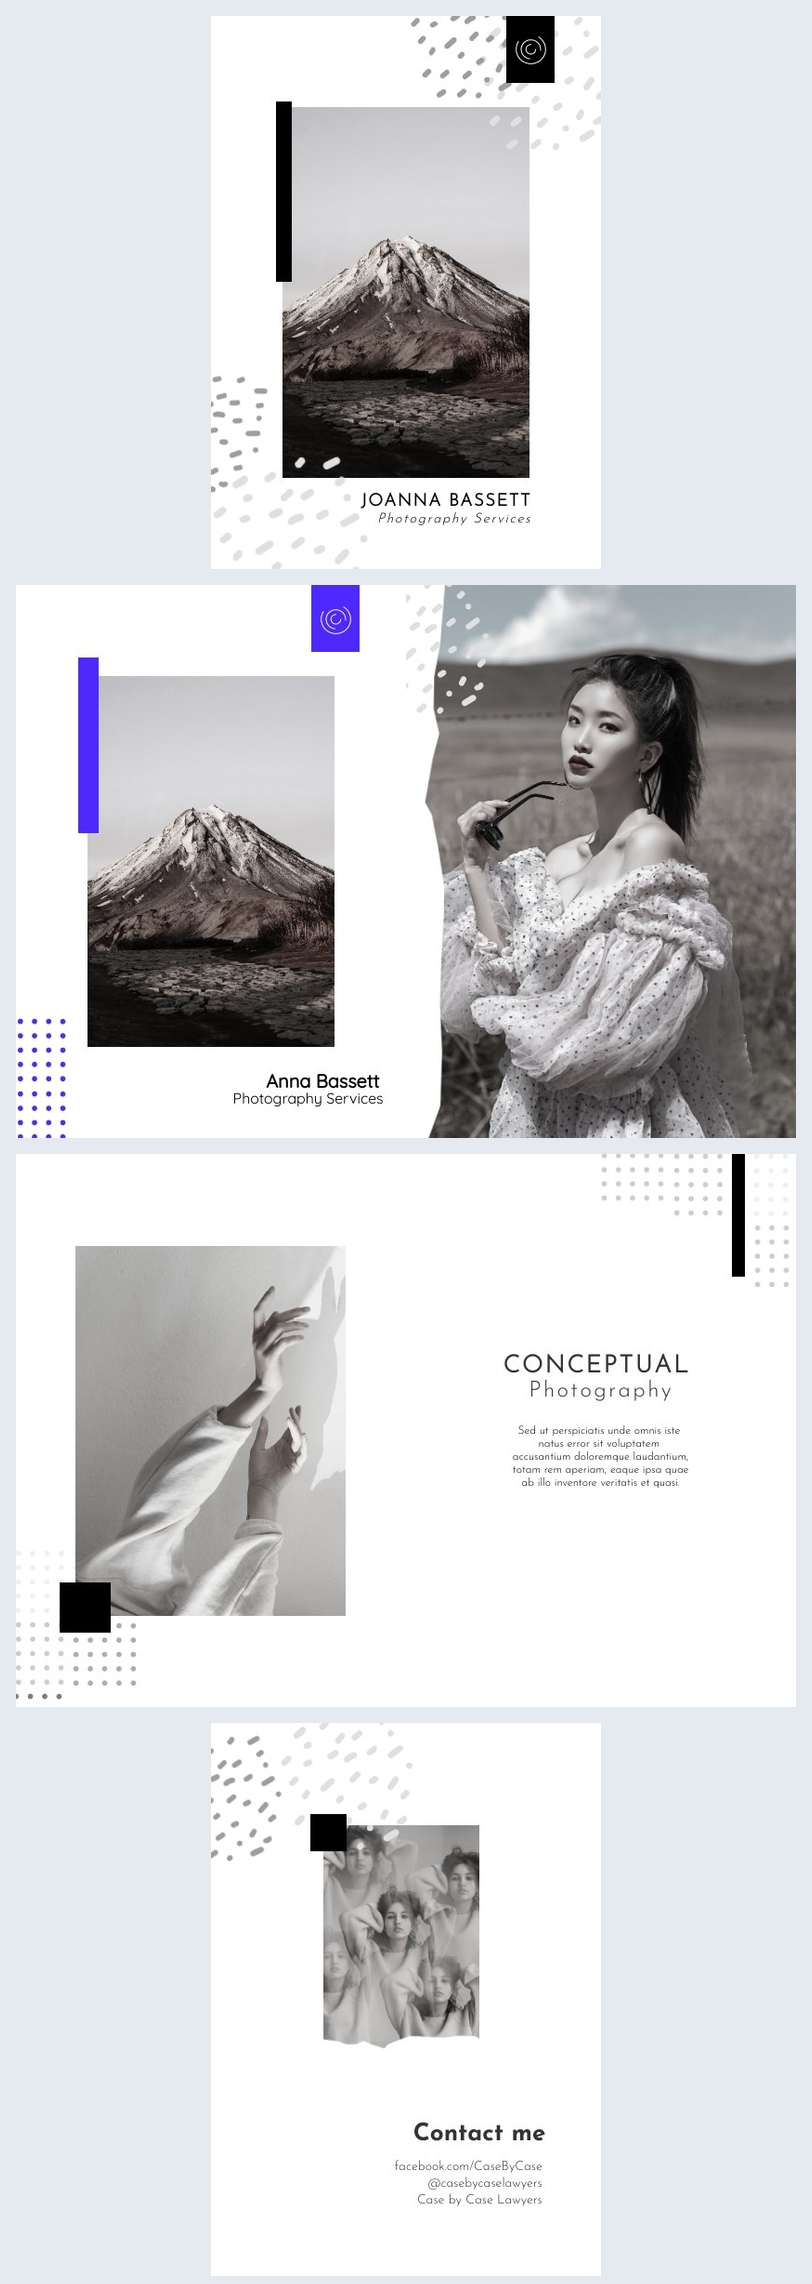 Photography Booklet Design Inspiration